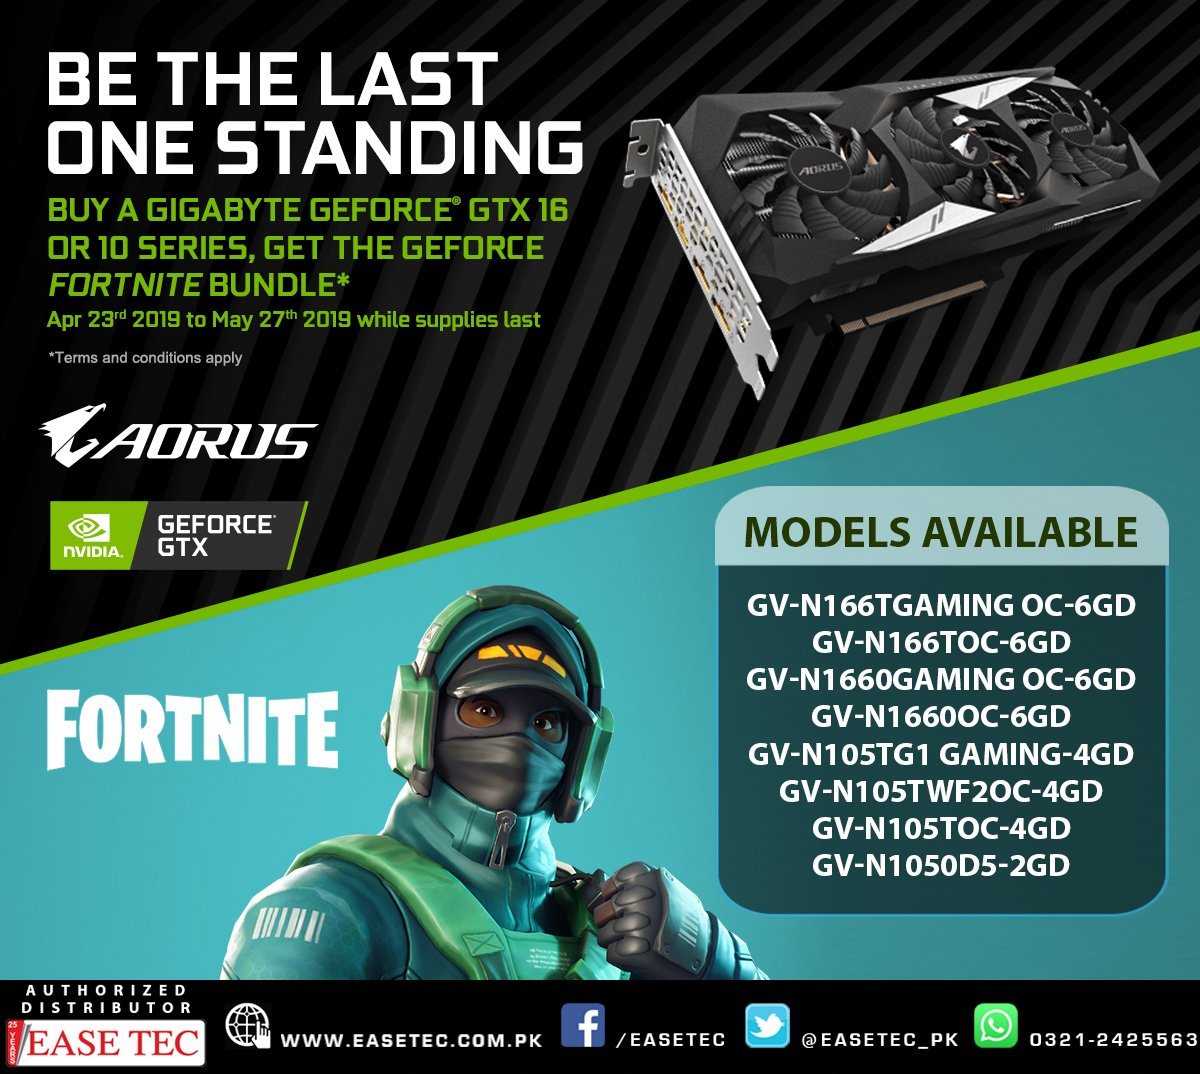 What Graphics Cards Get The Fortnite Geforce Bundle Easetec On Twitter Buy A Qualified Gigabyte Gtx And Get Fortnite Bundle Bundle Models Gigabyte Geforce Gtx 1660ti Gtx 1660 Gtx 1650 Gtx 1070ti 1070 1060 1050ti And 1050 Graphic Card